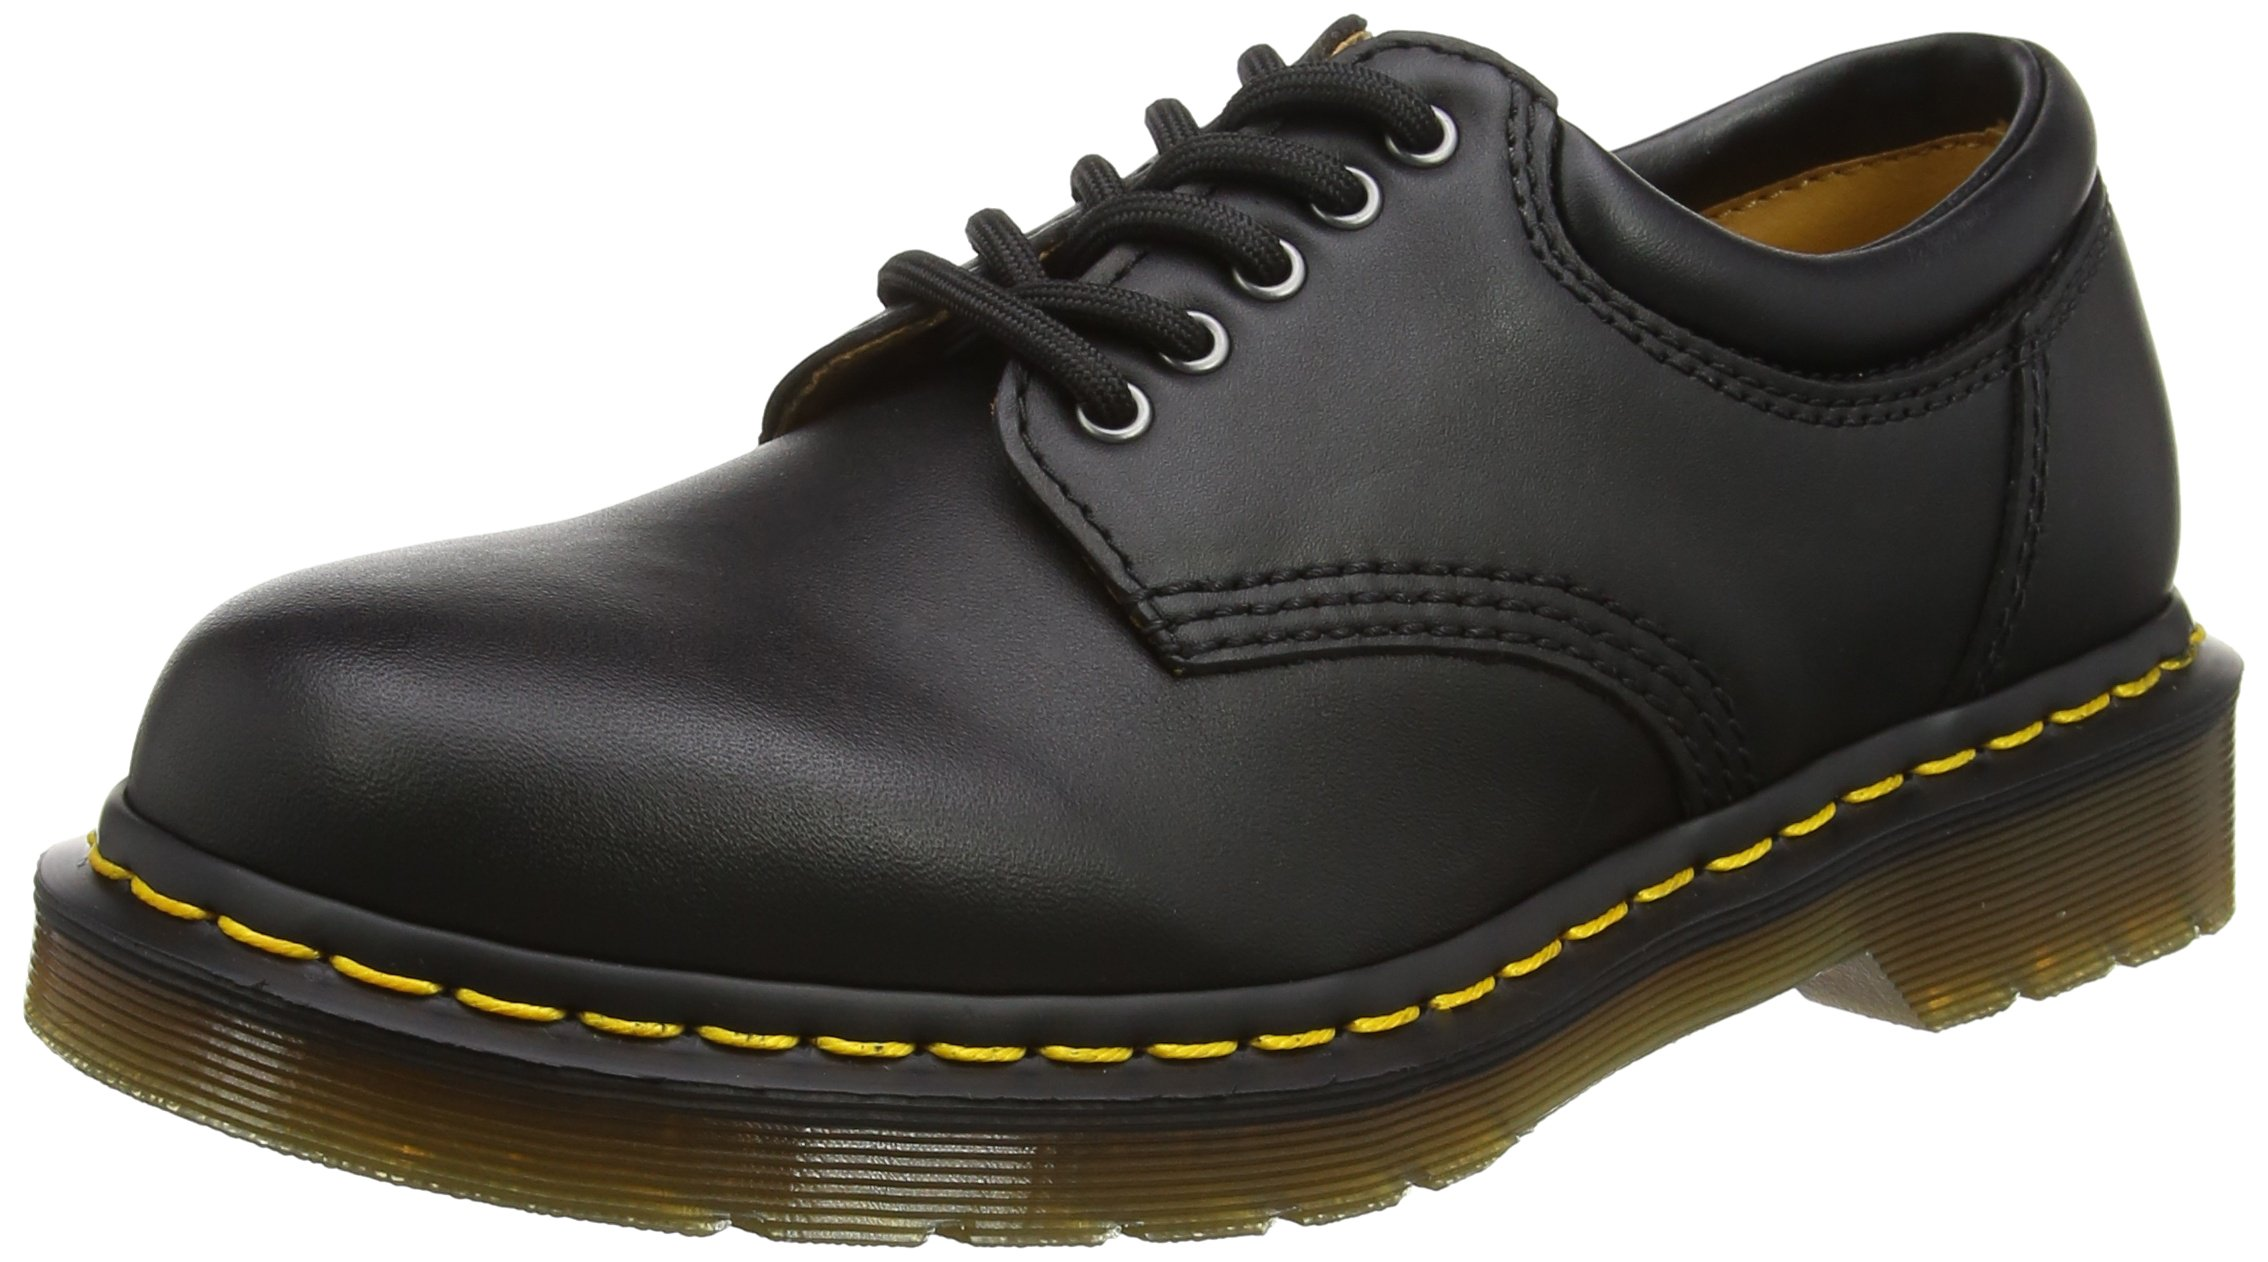 Dr. Martens R11849001 8053 5 Eye Padded Collar Oxford, Black Nappa 8 UK 9 US by Dr. Martens